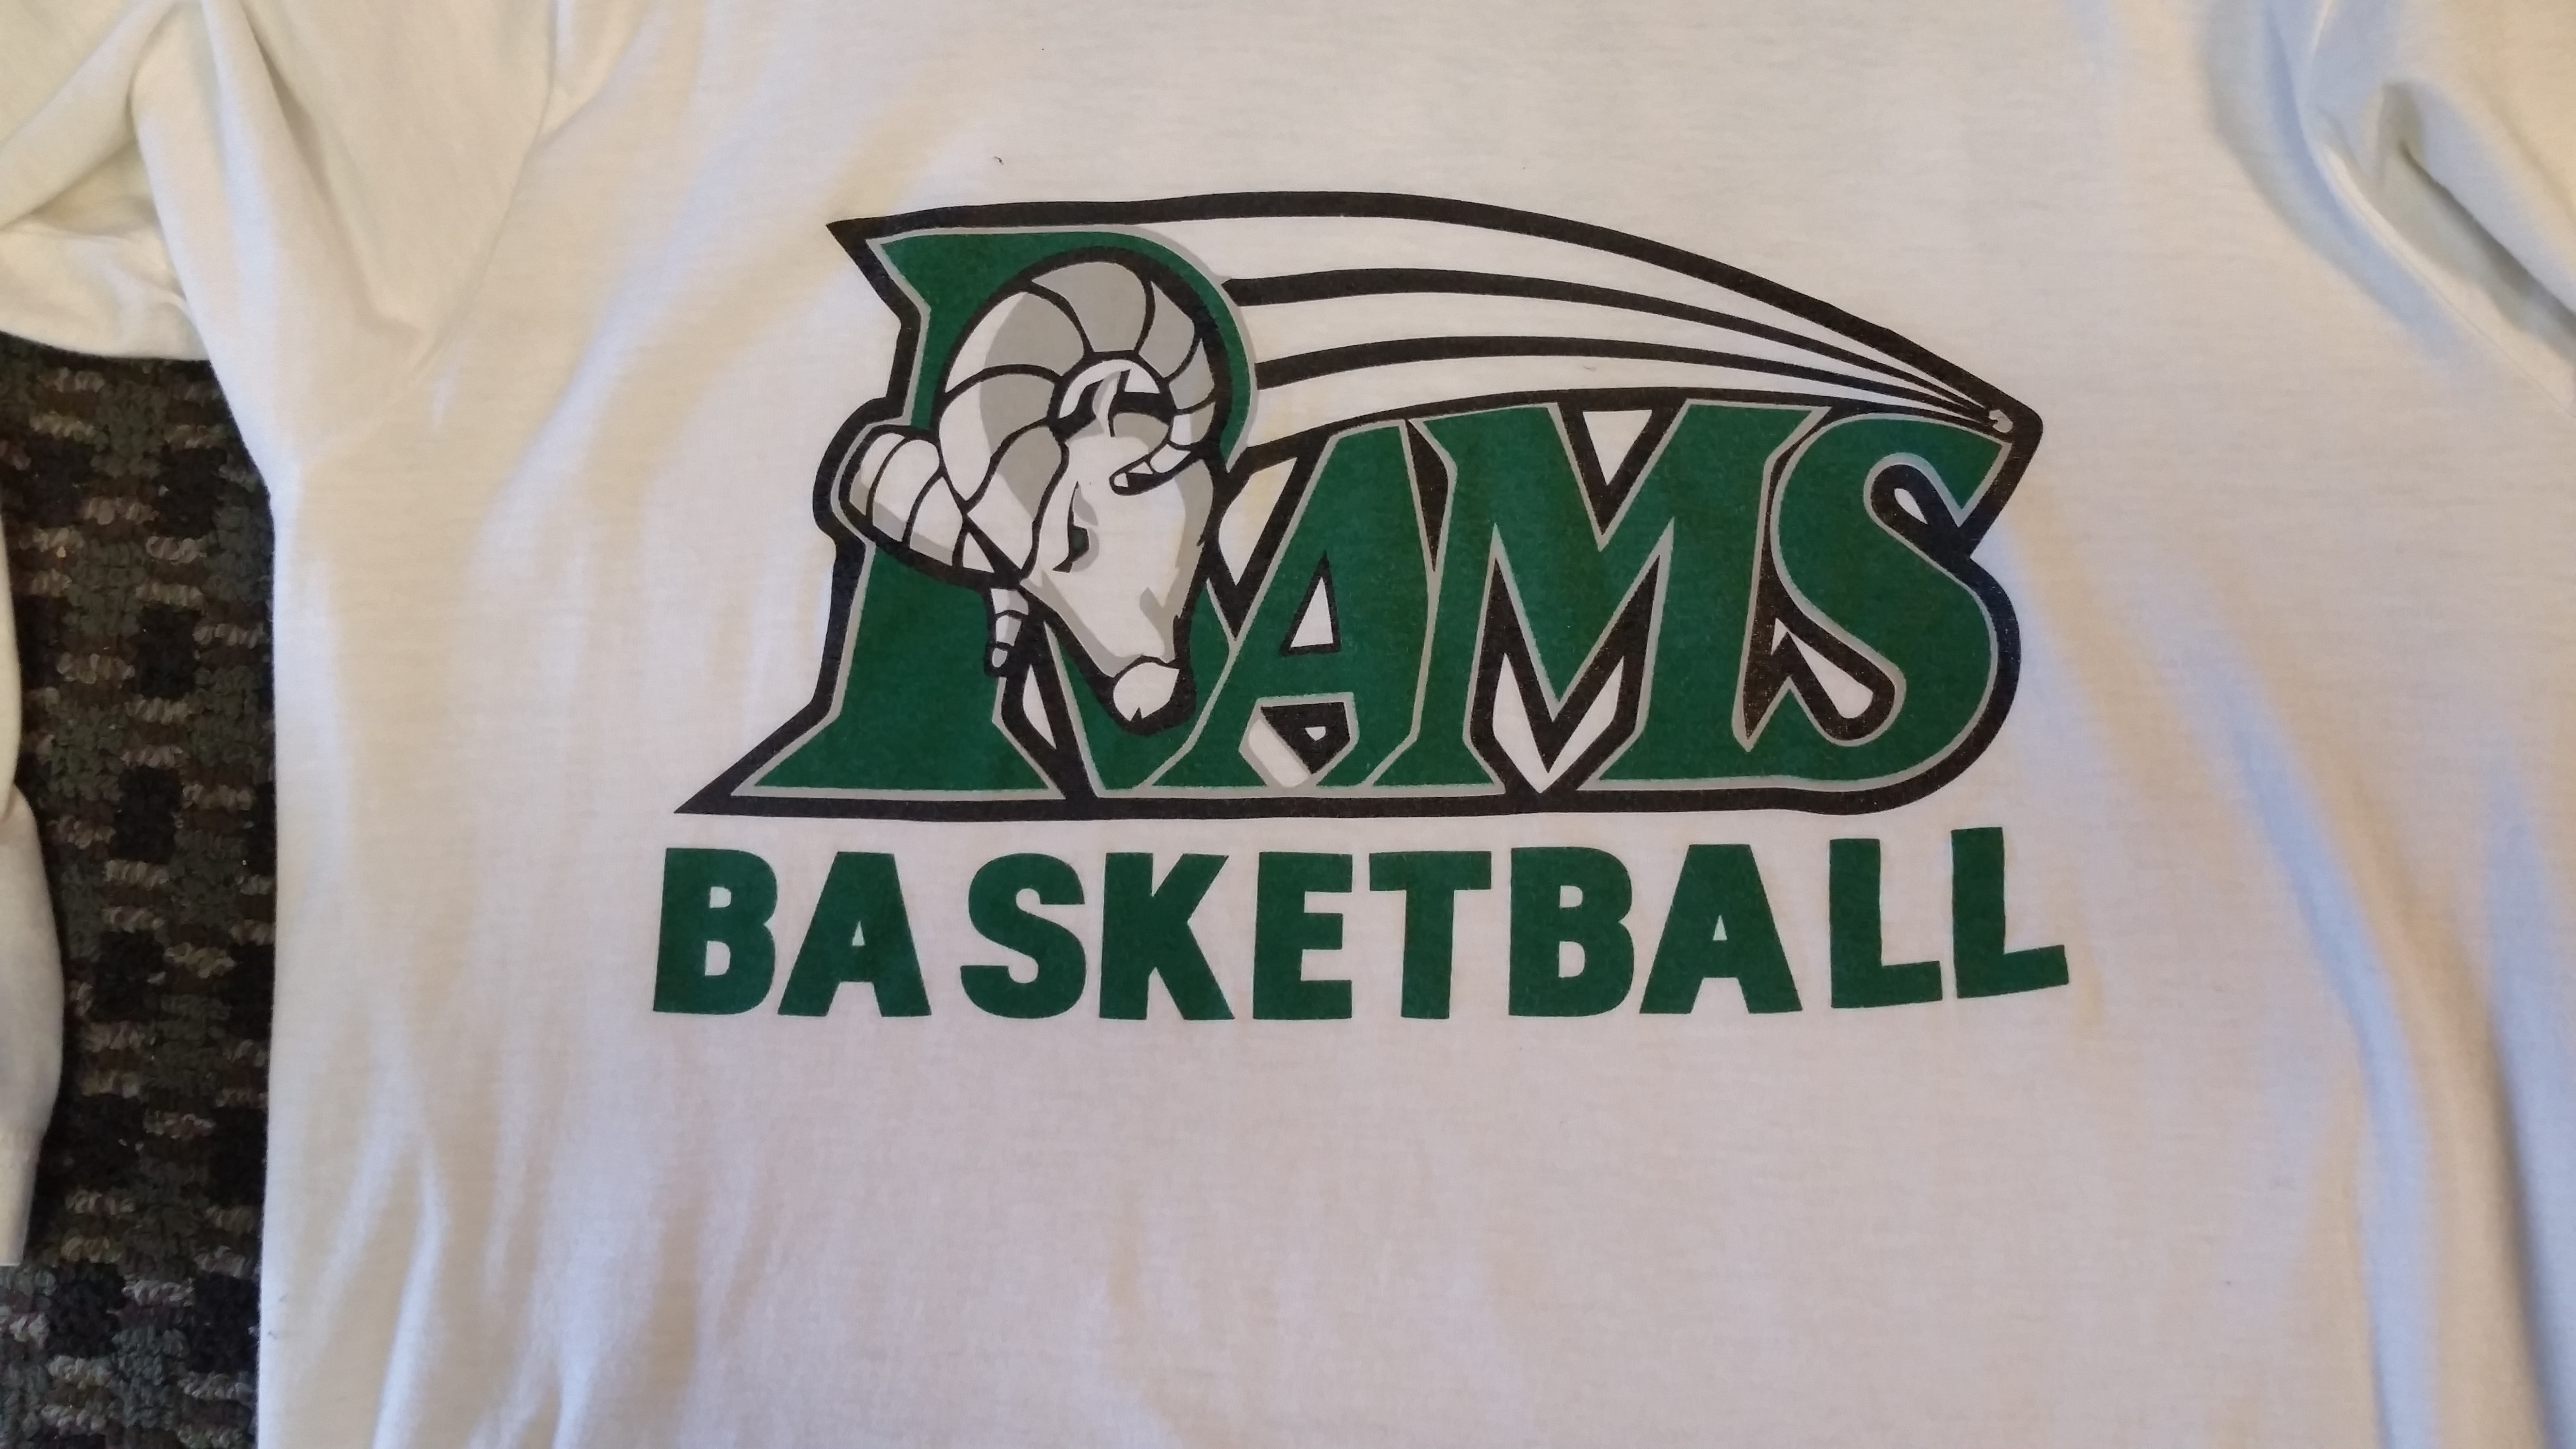 Berkner Basketball Shirts